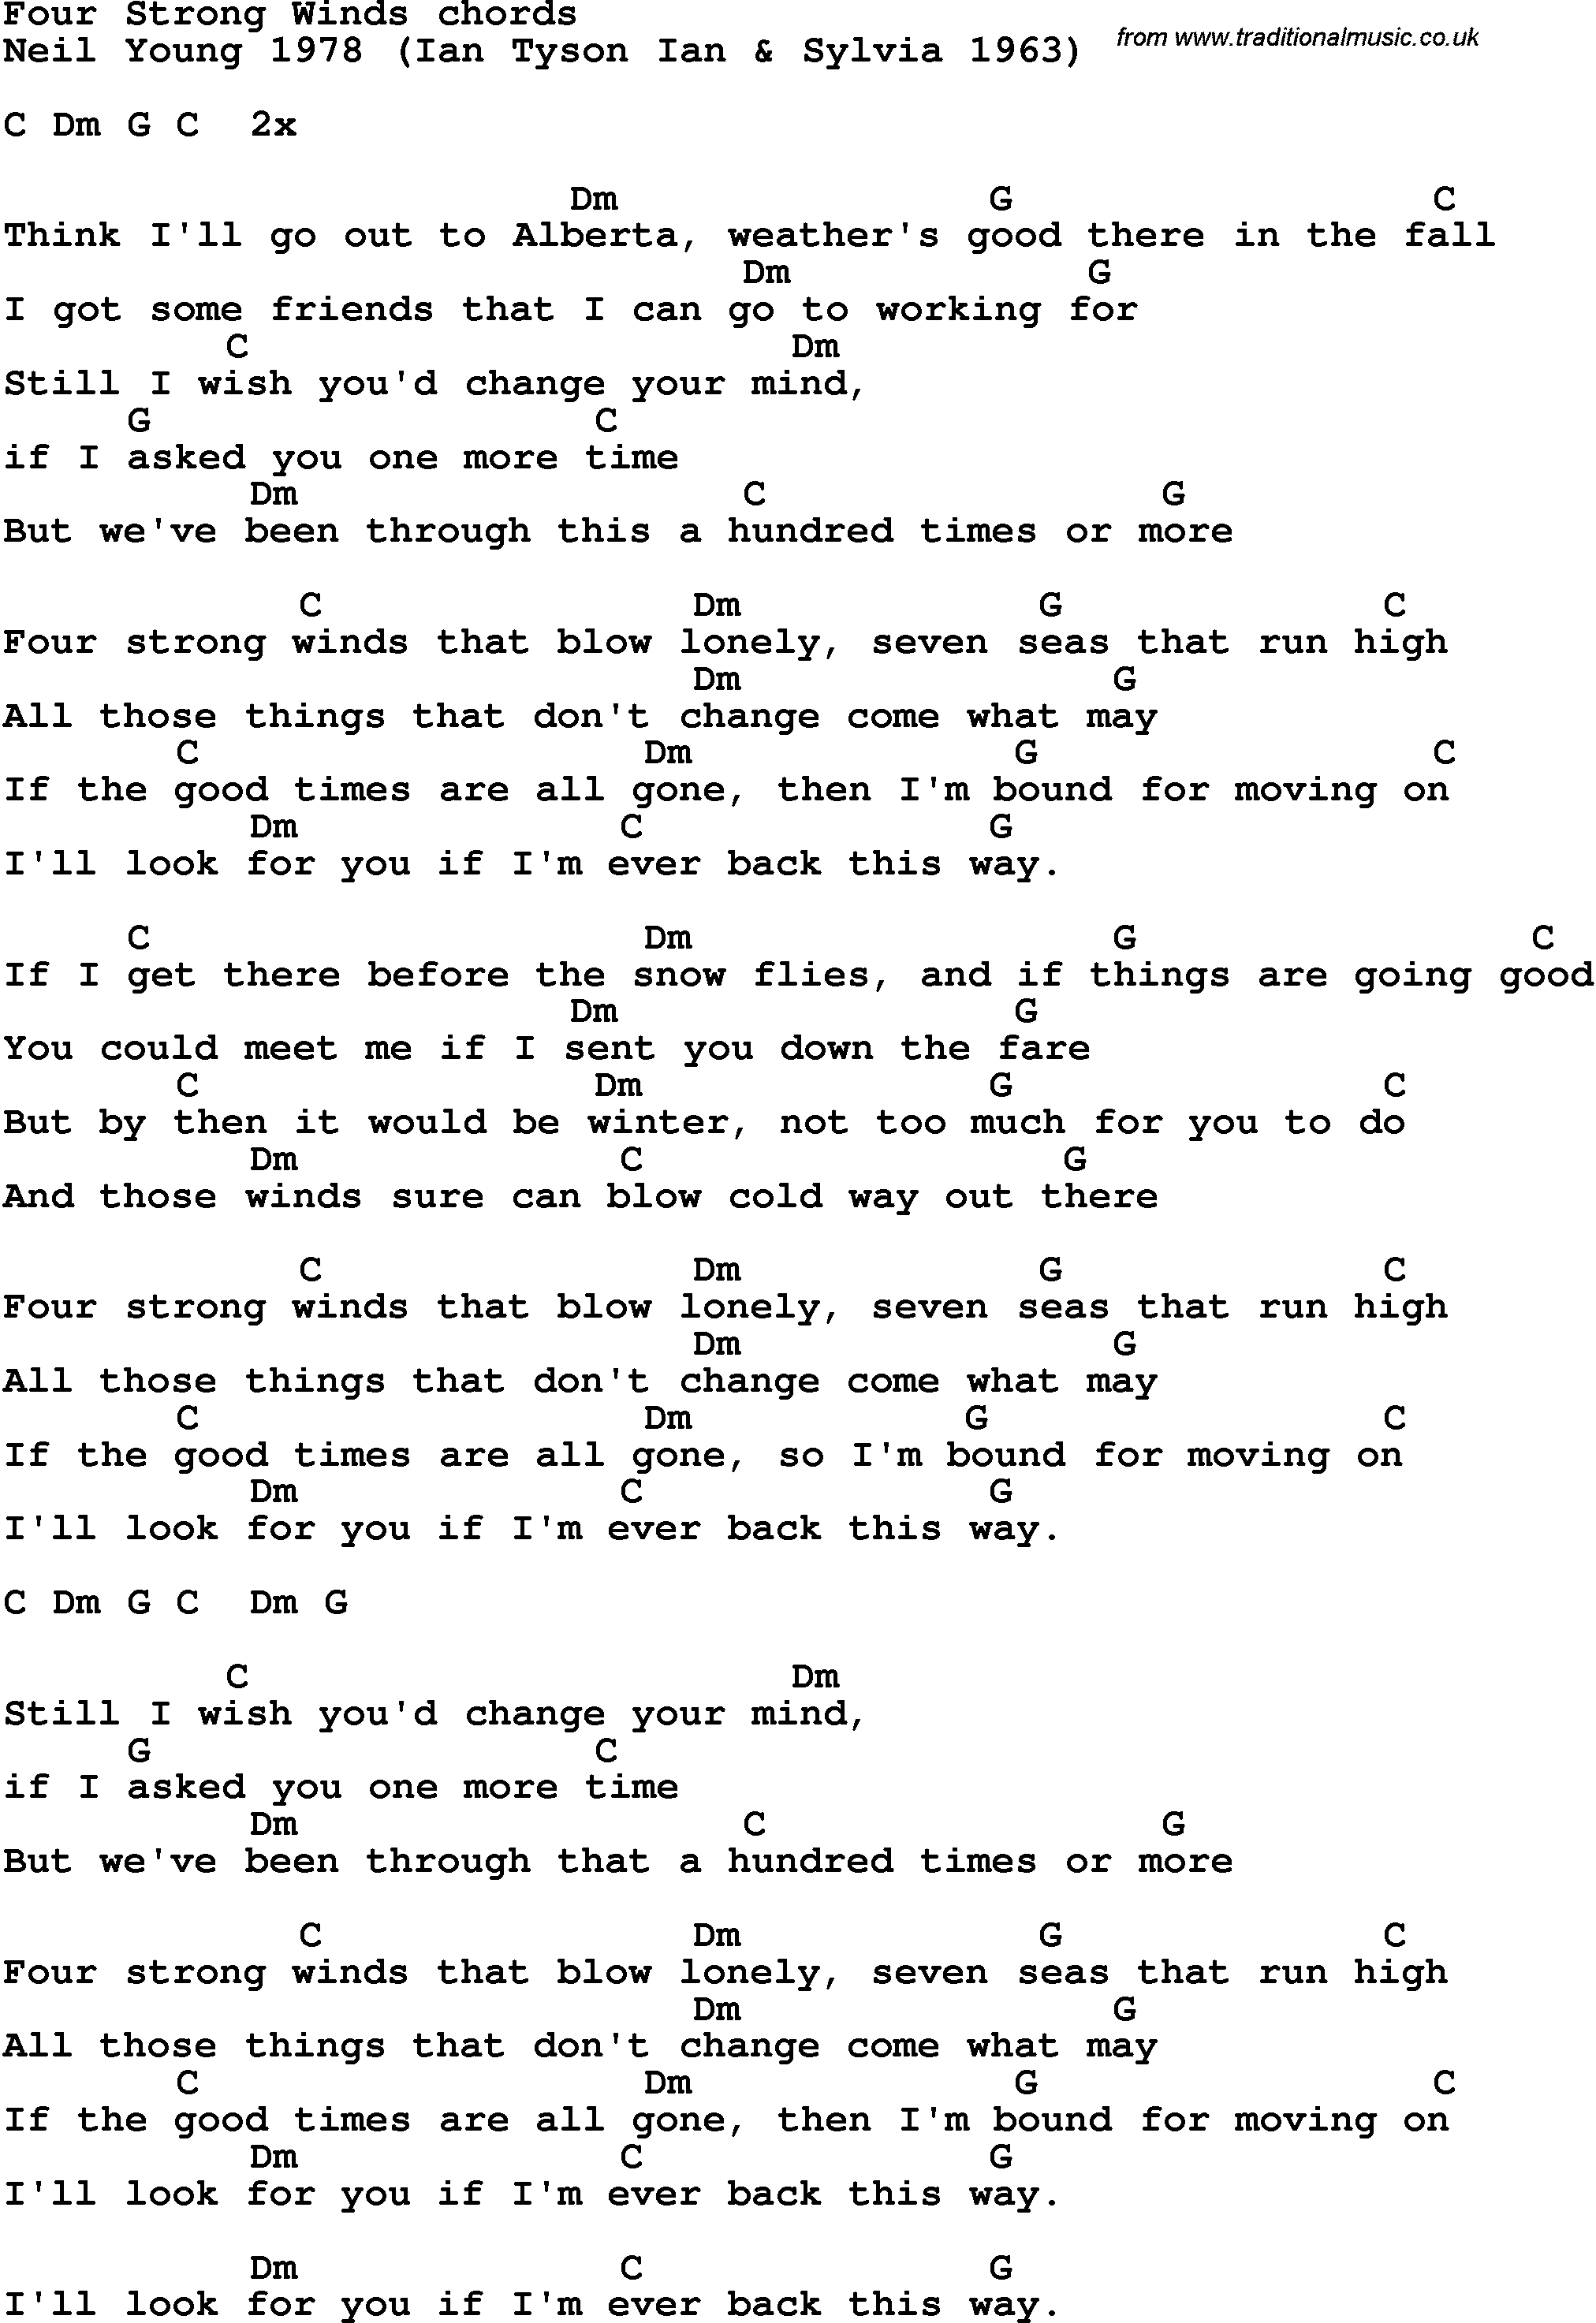 Four Chord Song Song Lyrics With Guitar Chords For Four Strong Winds